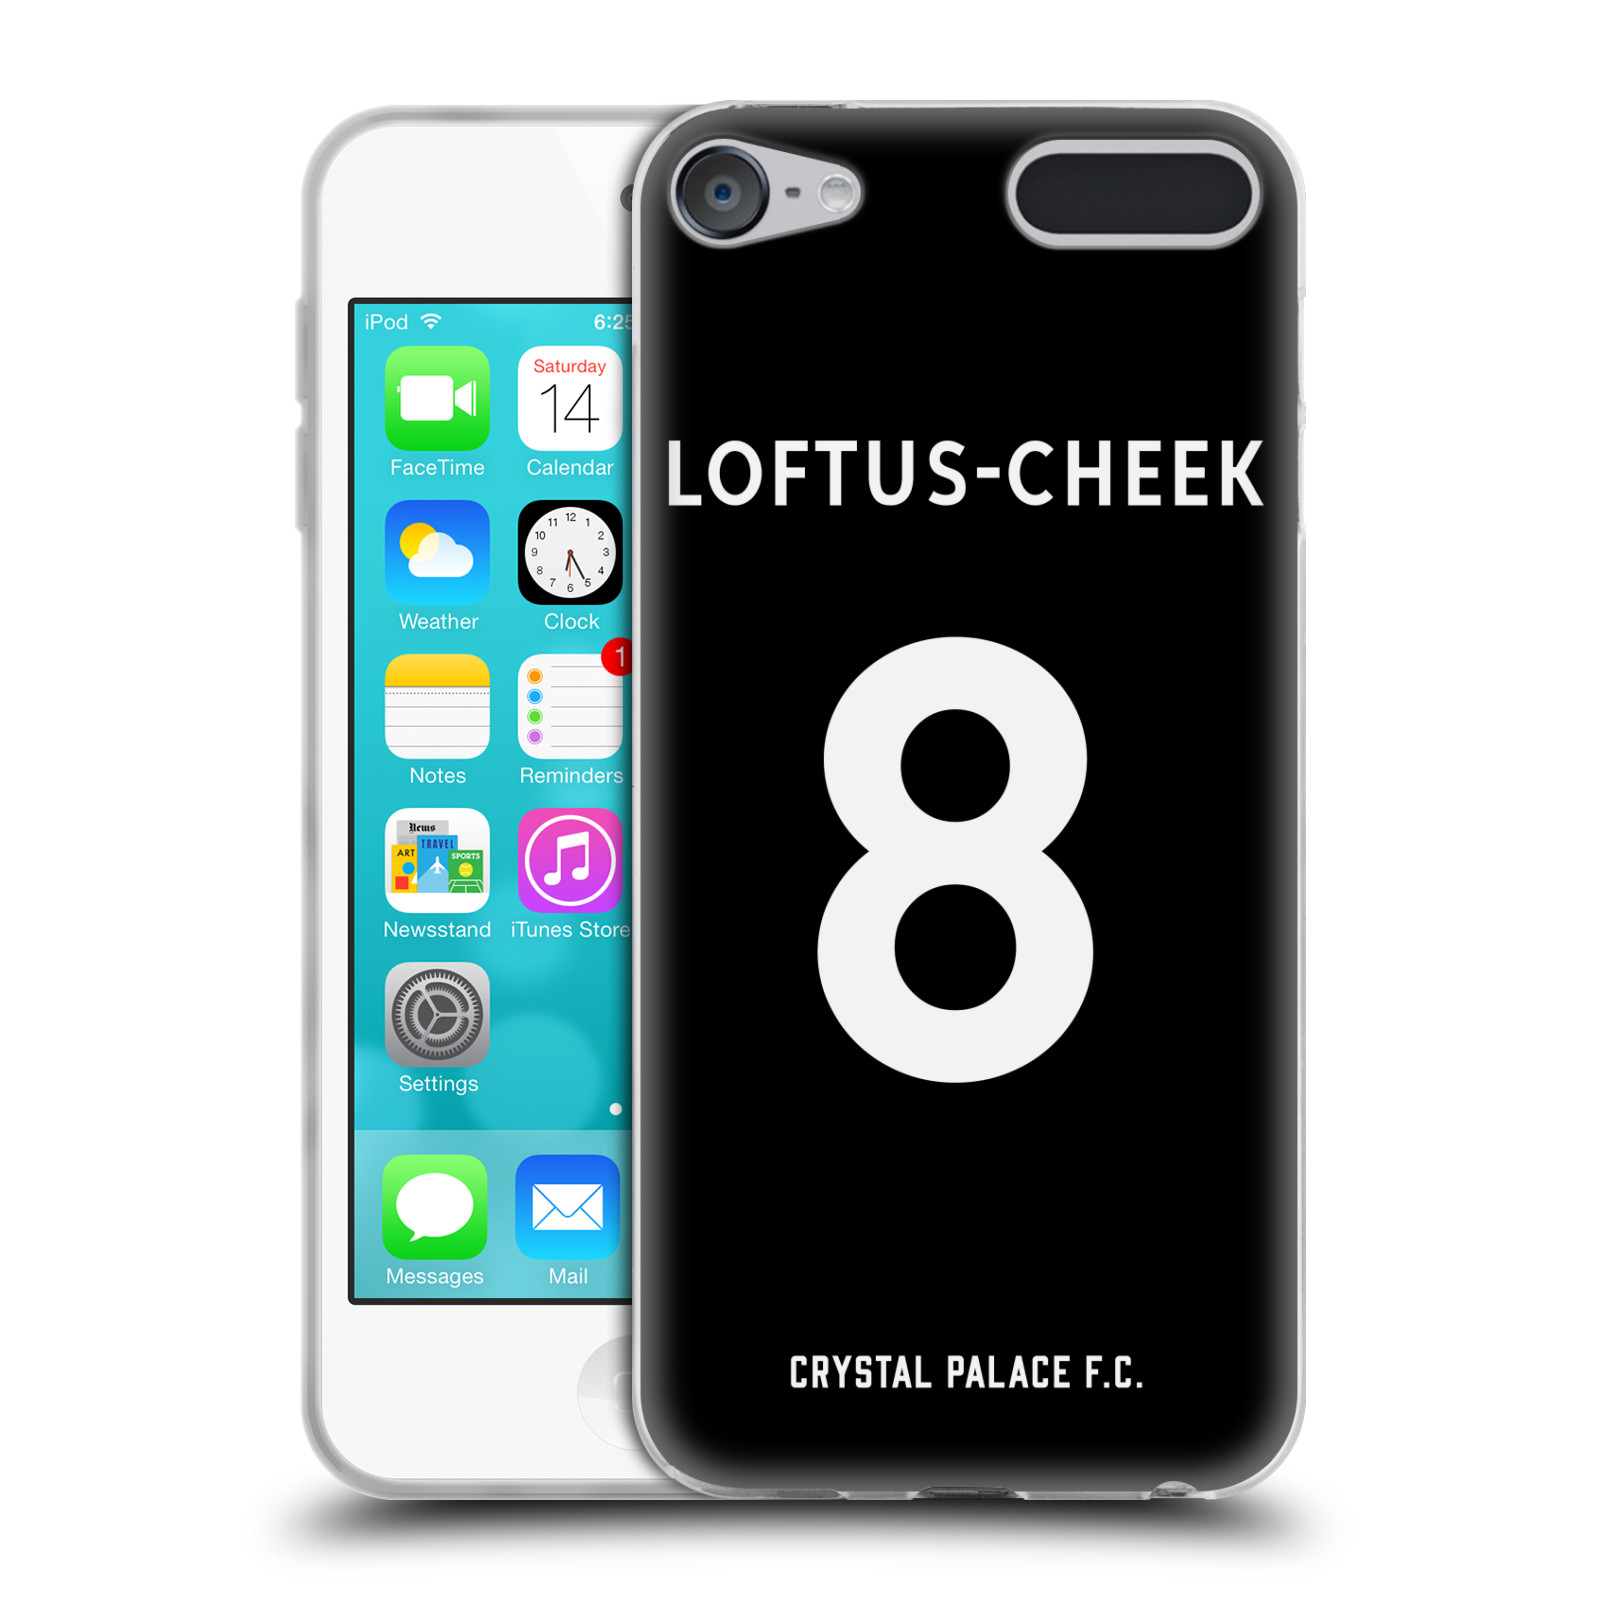 CRYSTAL-PALACE-FC-2017-18-AWAY-KIT-1-CASE-IN-GEL-PER-APPLE-iPOD-TOUCH-MP3